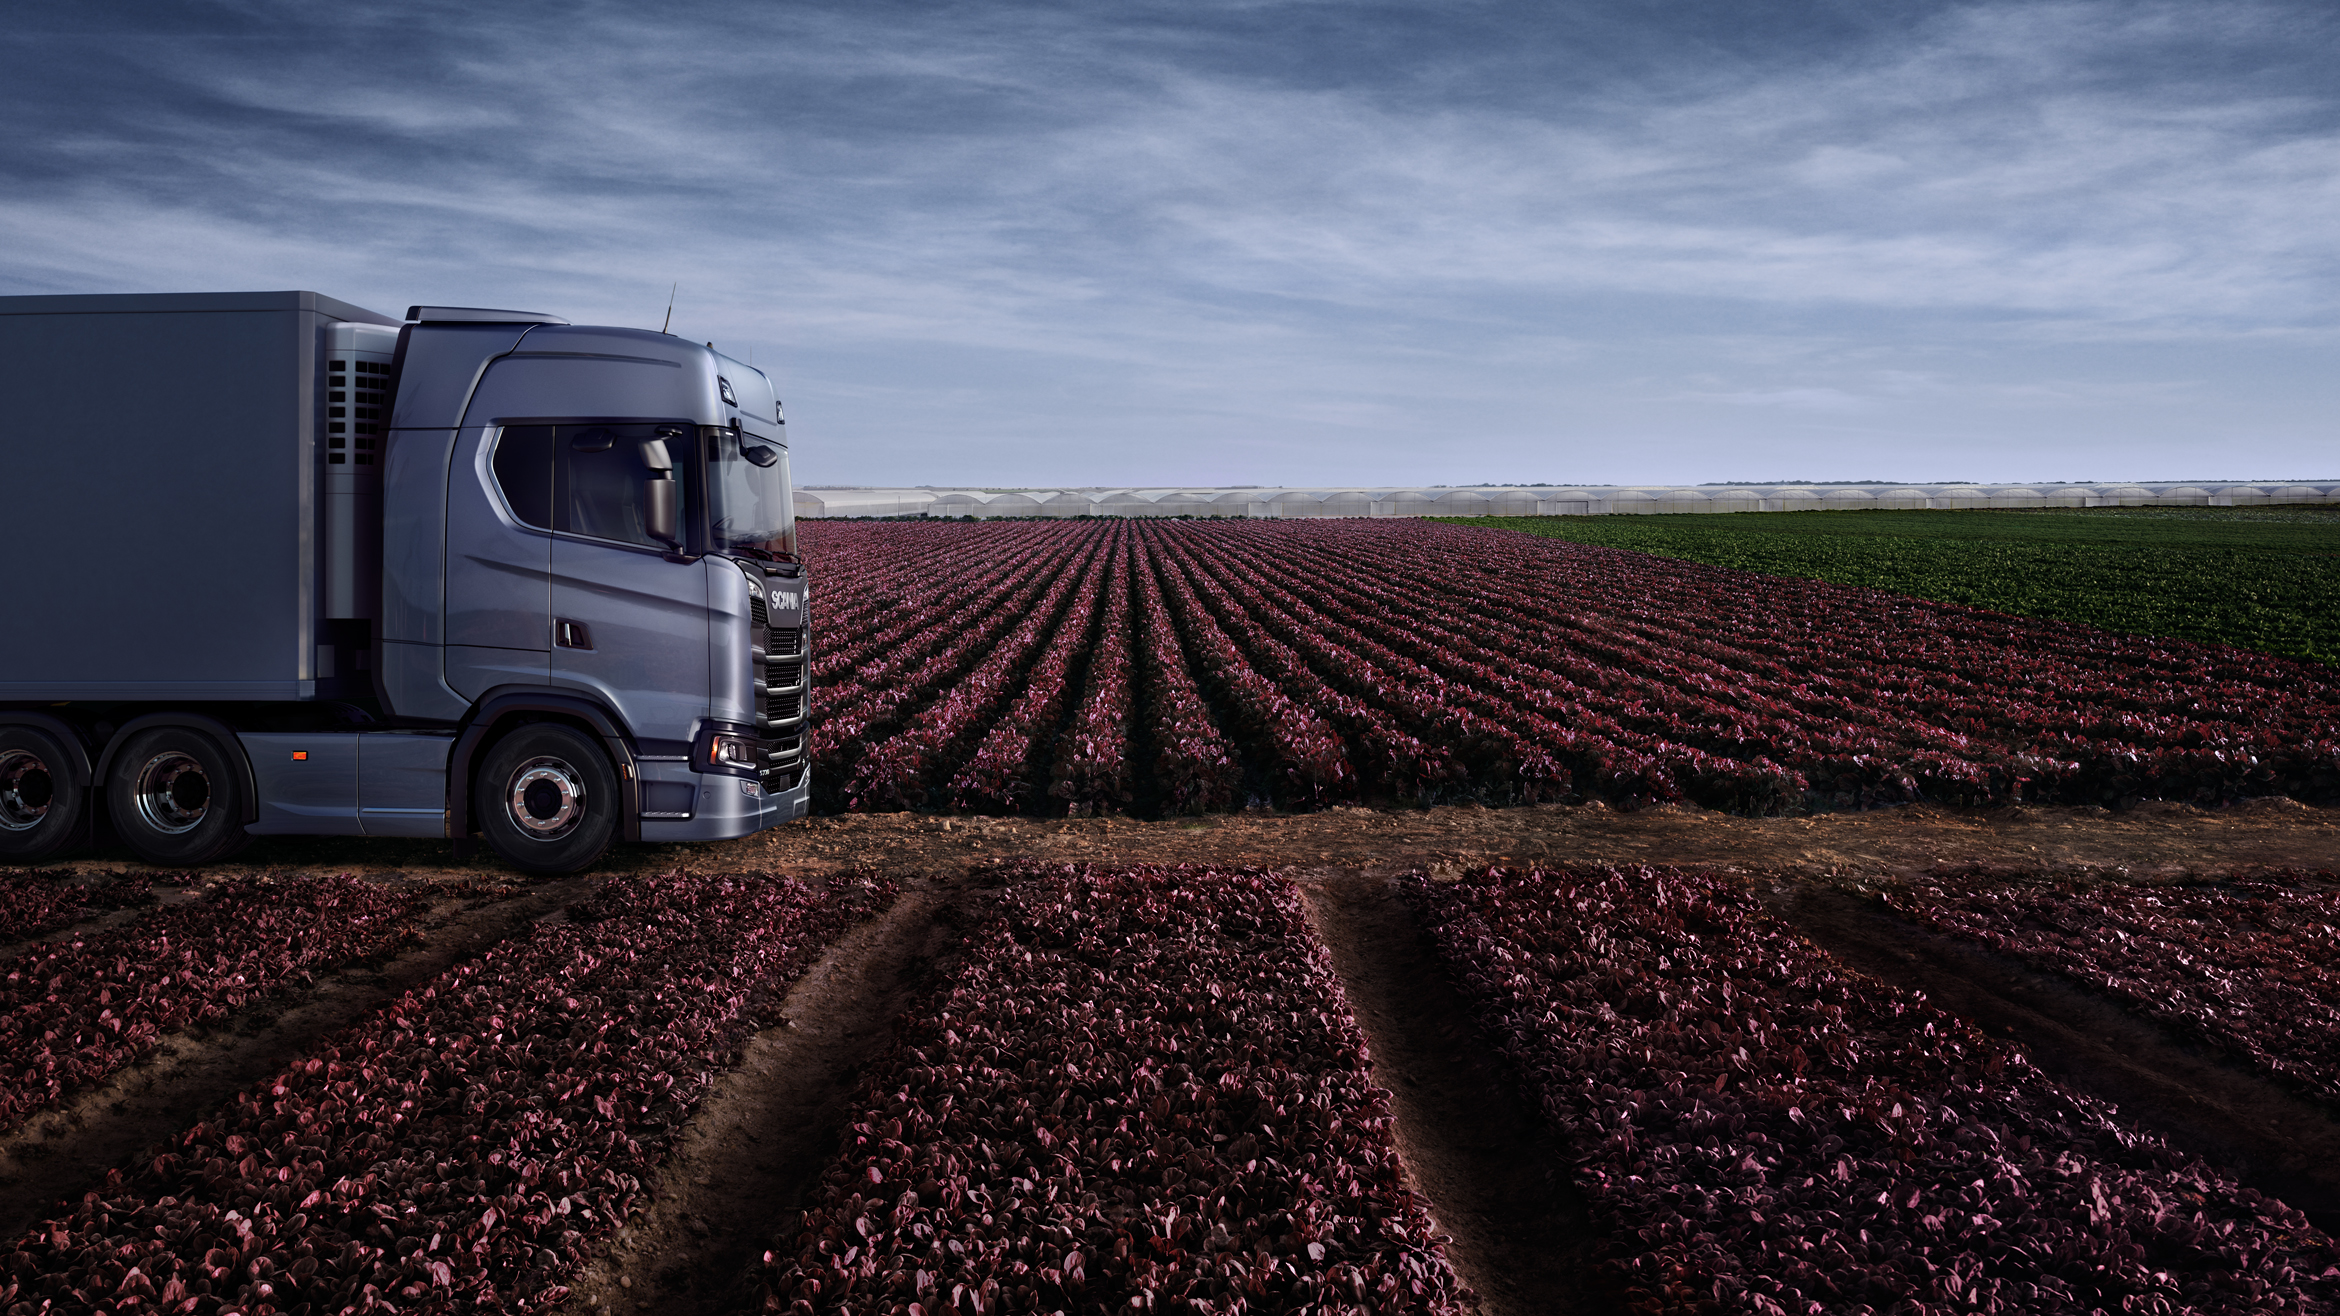 A Scania truck side on in a field